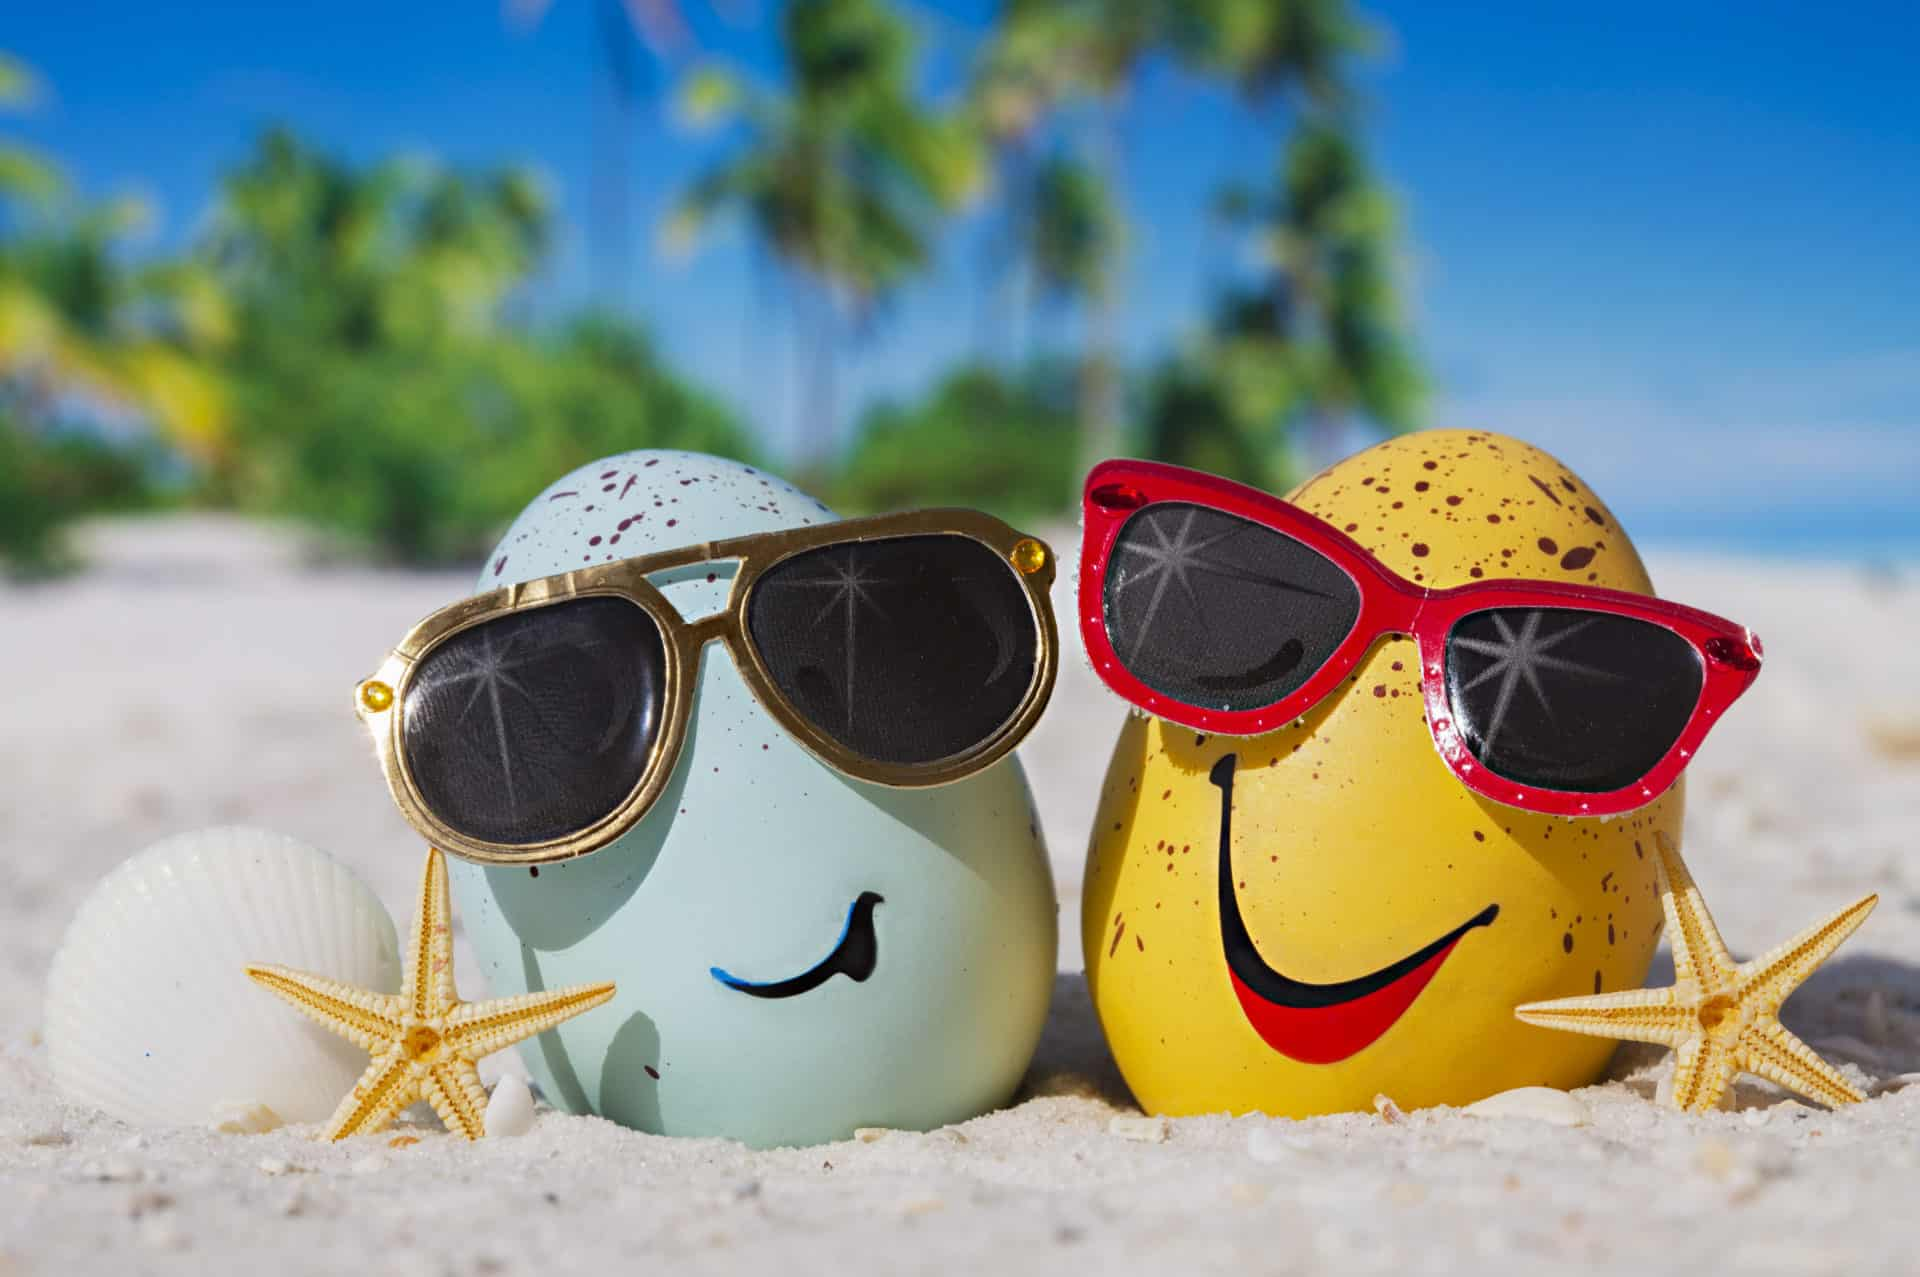 Two Easter eggs wearing sunglasses on a beach